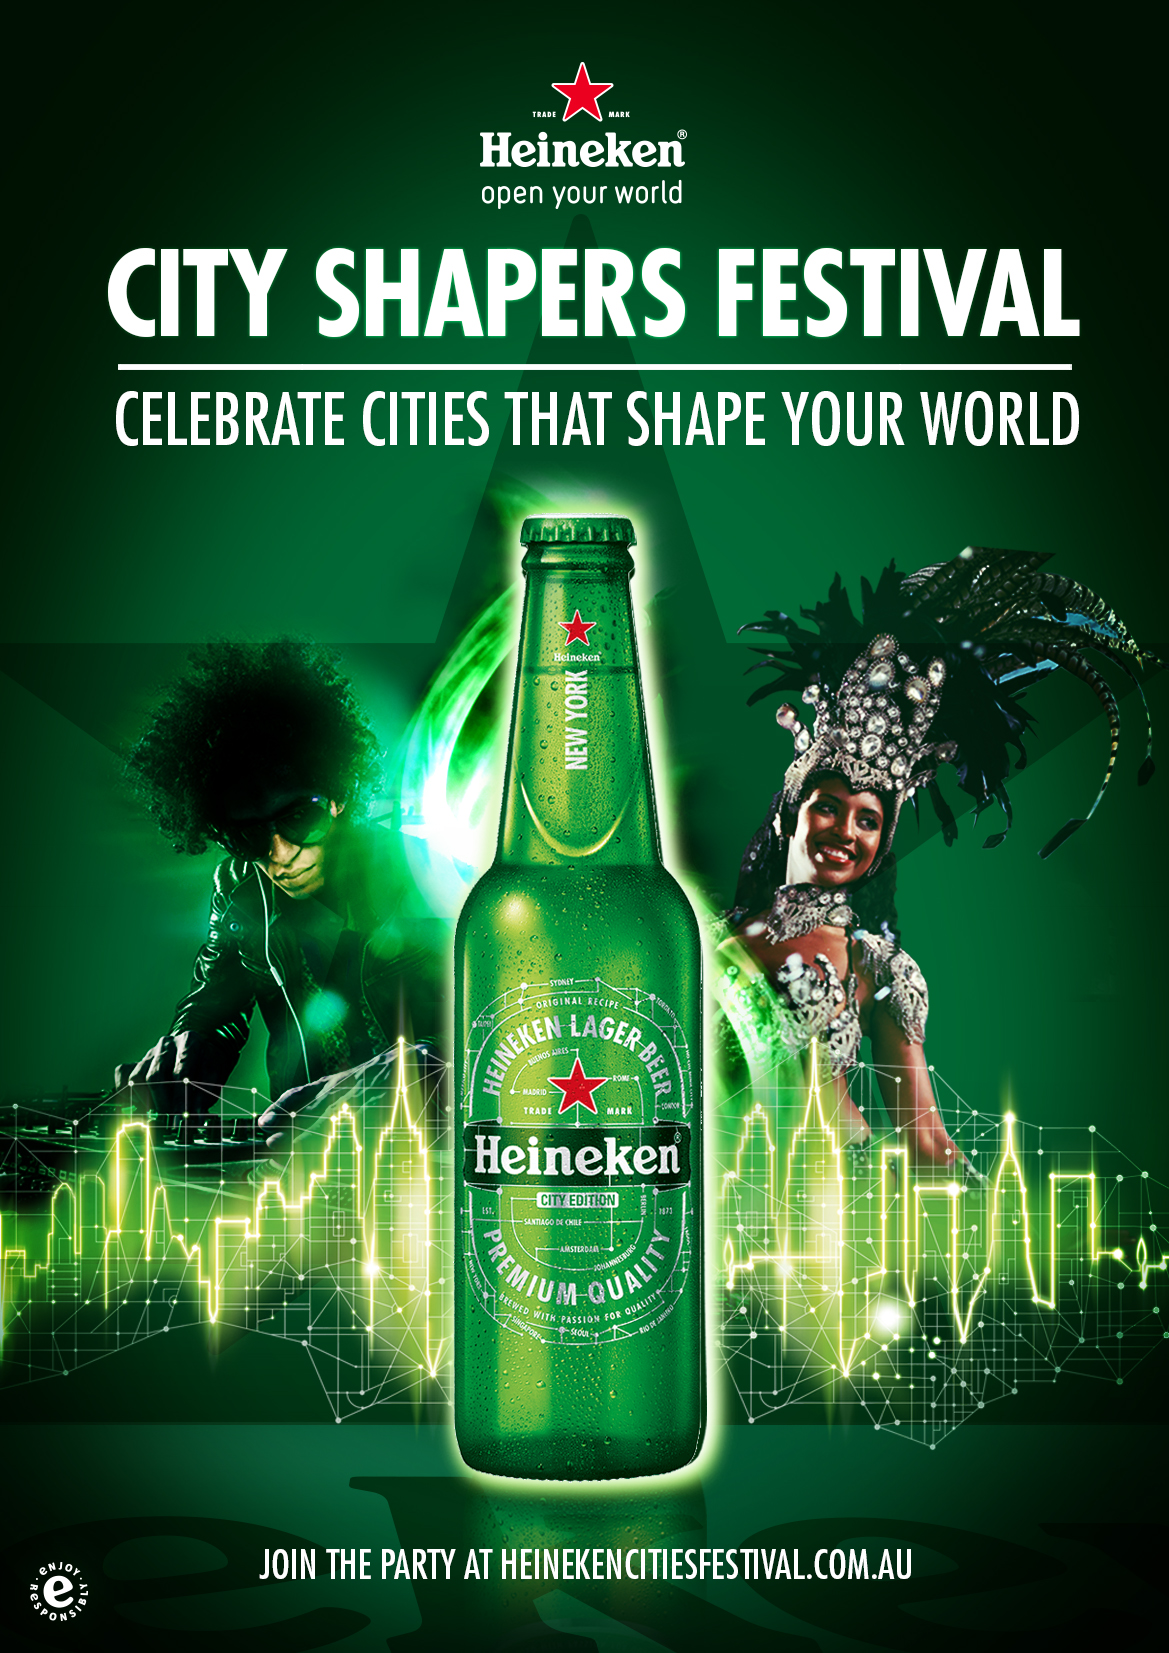 Heineken invites Australians to open their world with the launch of Heineken City Shapers Festival